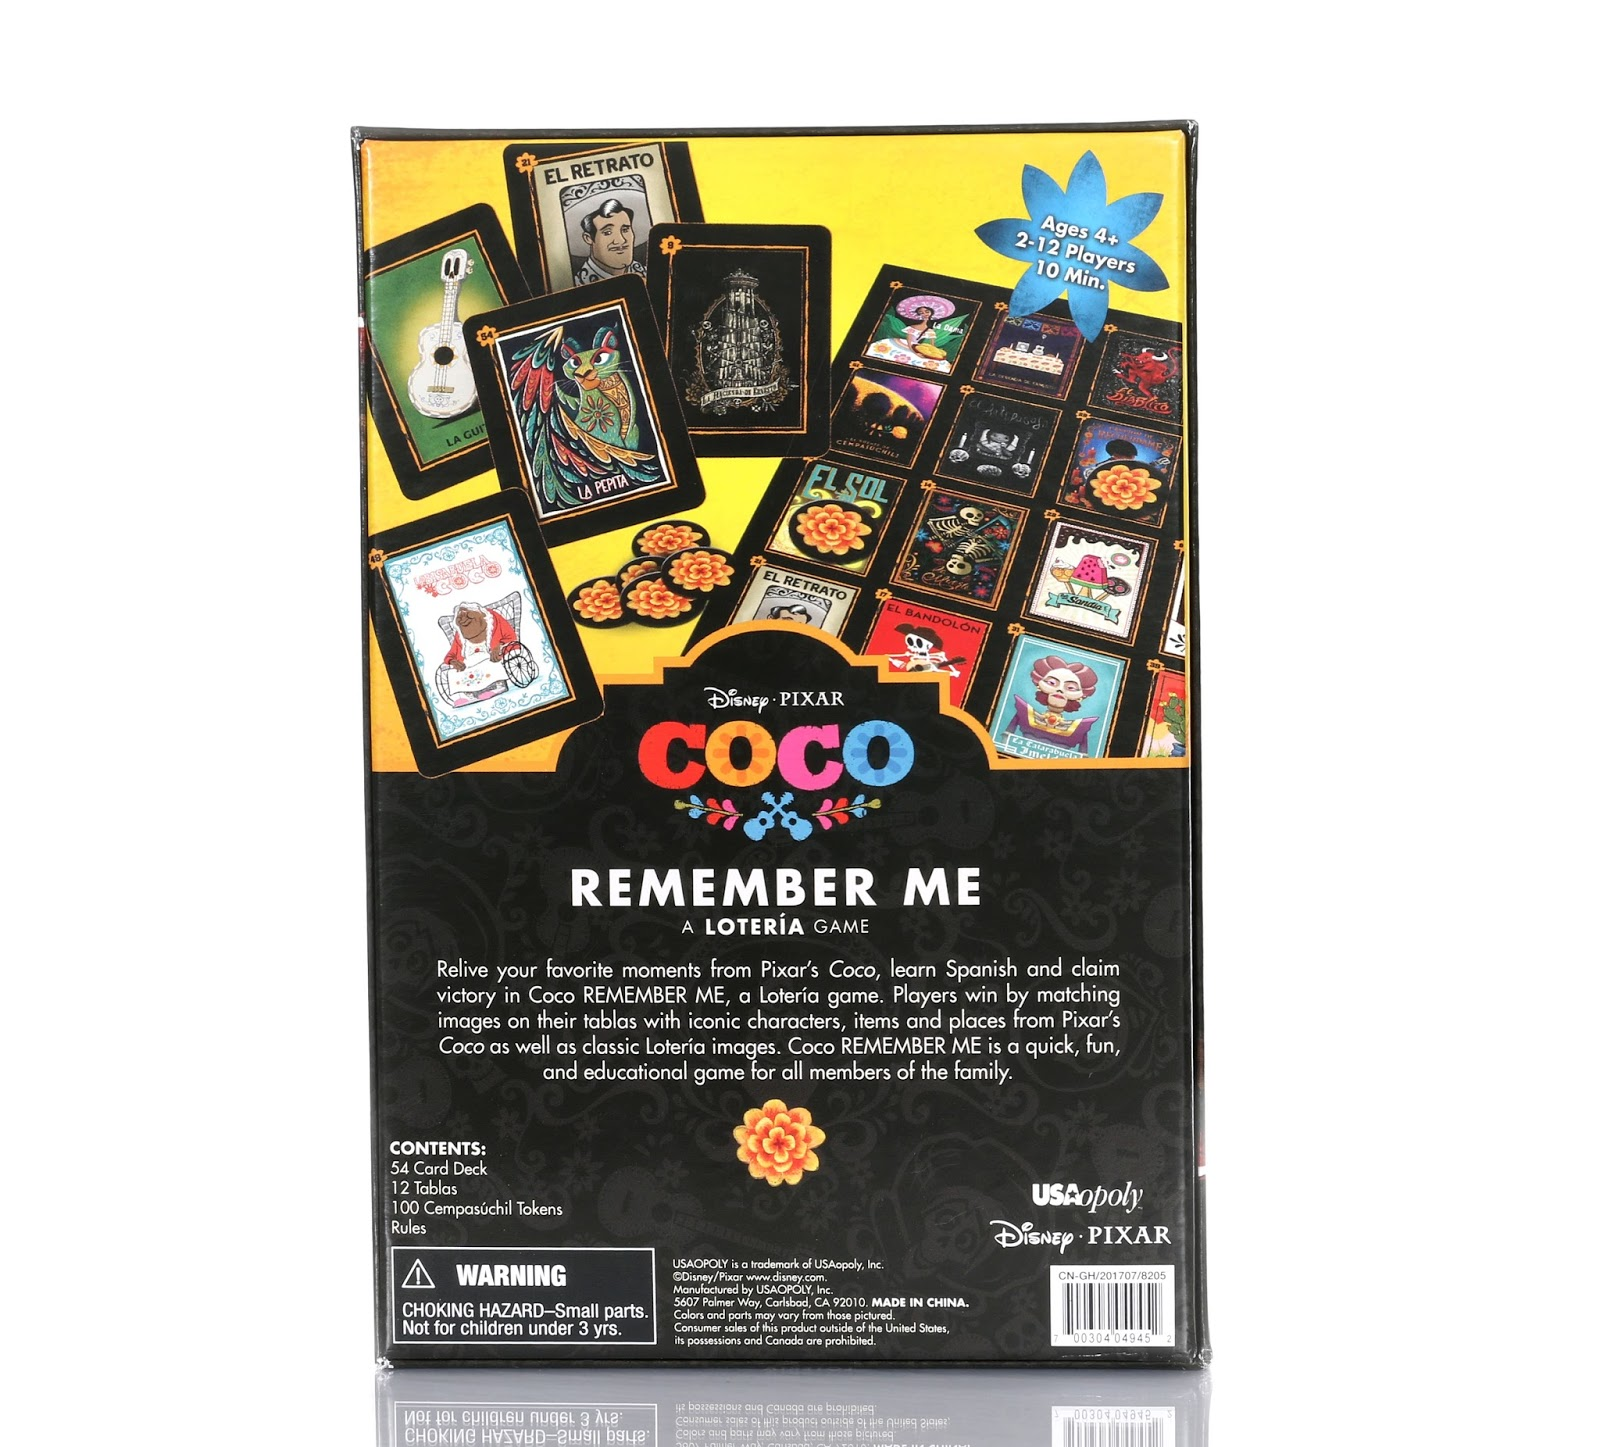 Coco Lotería mexican bingo Game review